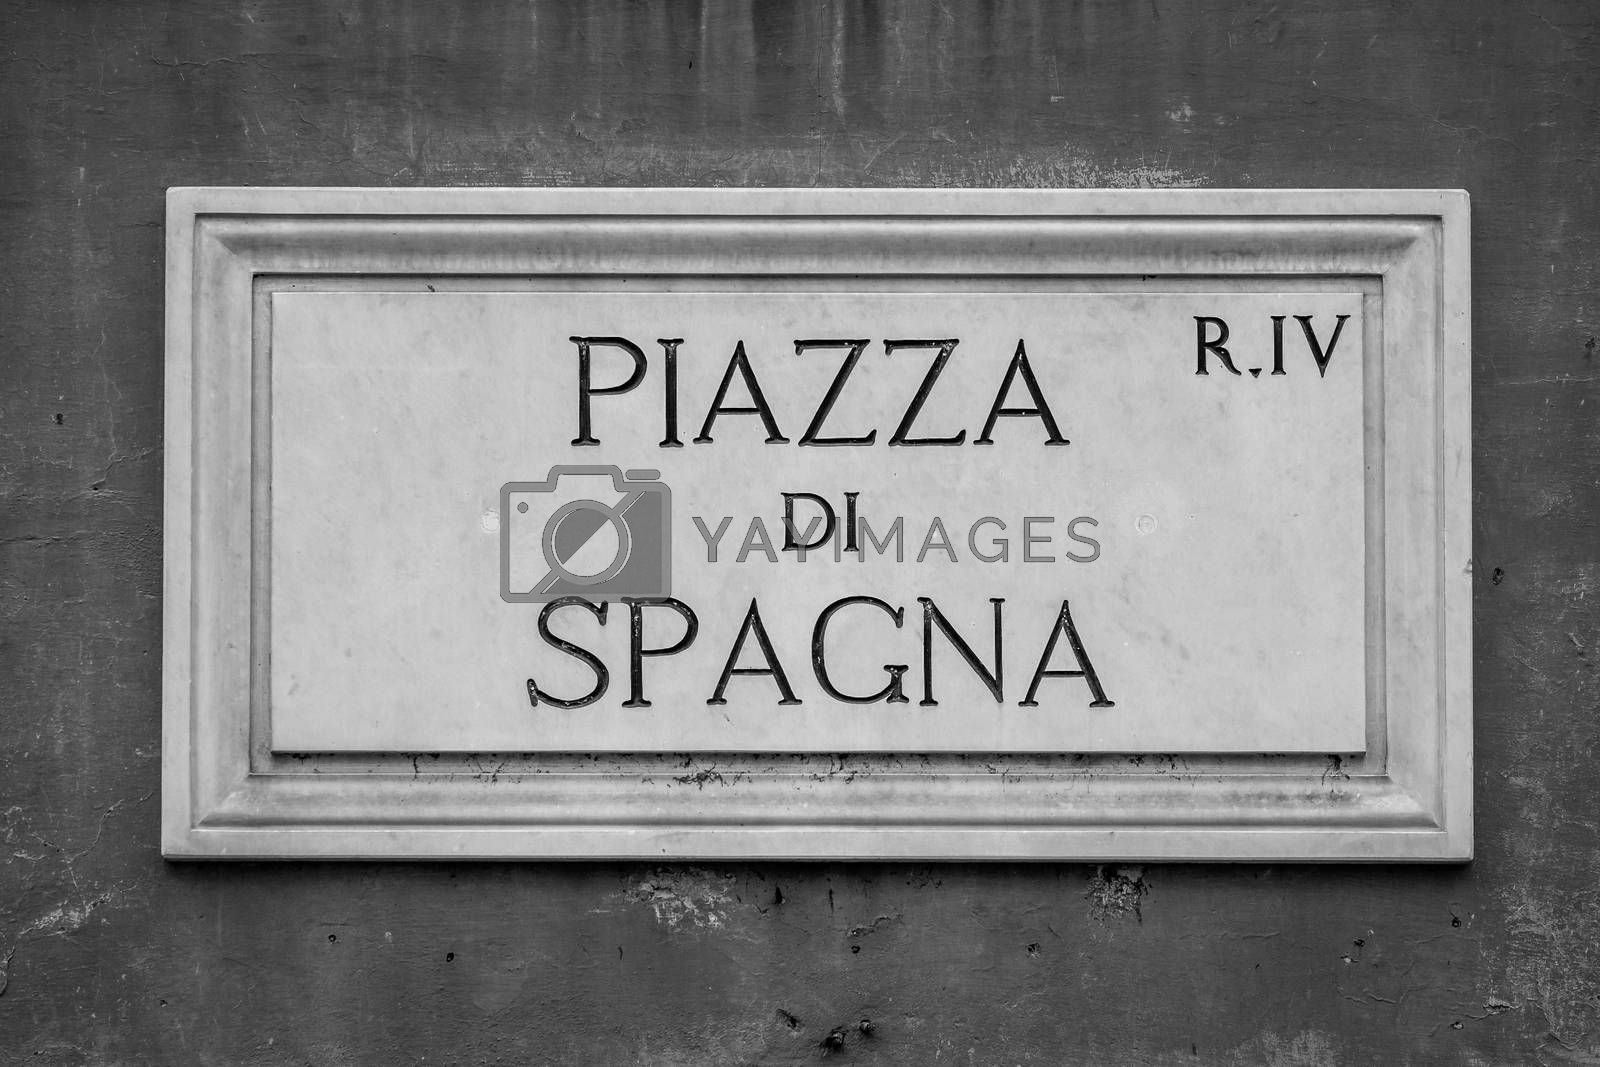 Detail of Piazza di Spagna (Spain Square ) in Rome, Italy